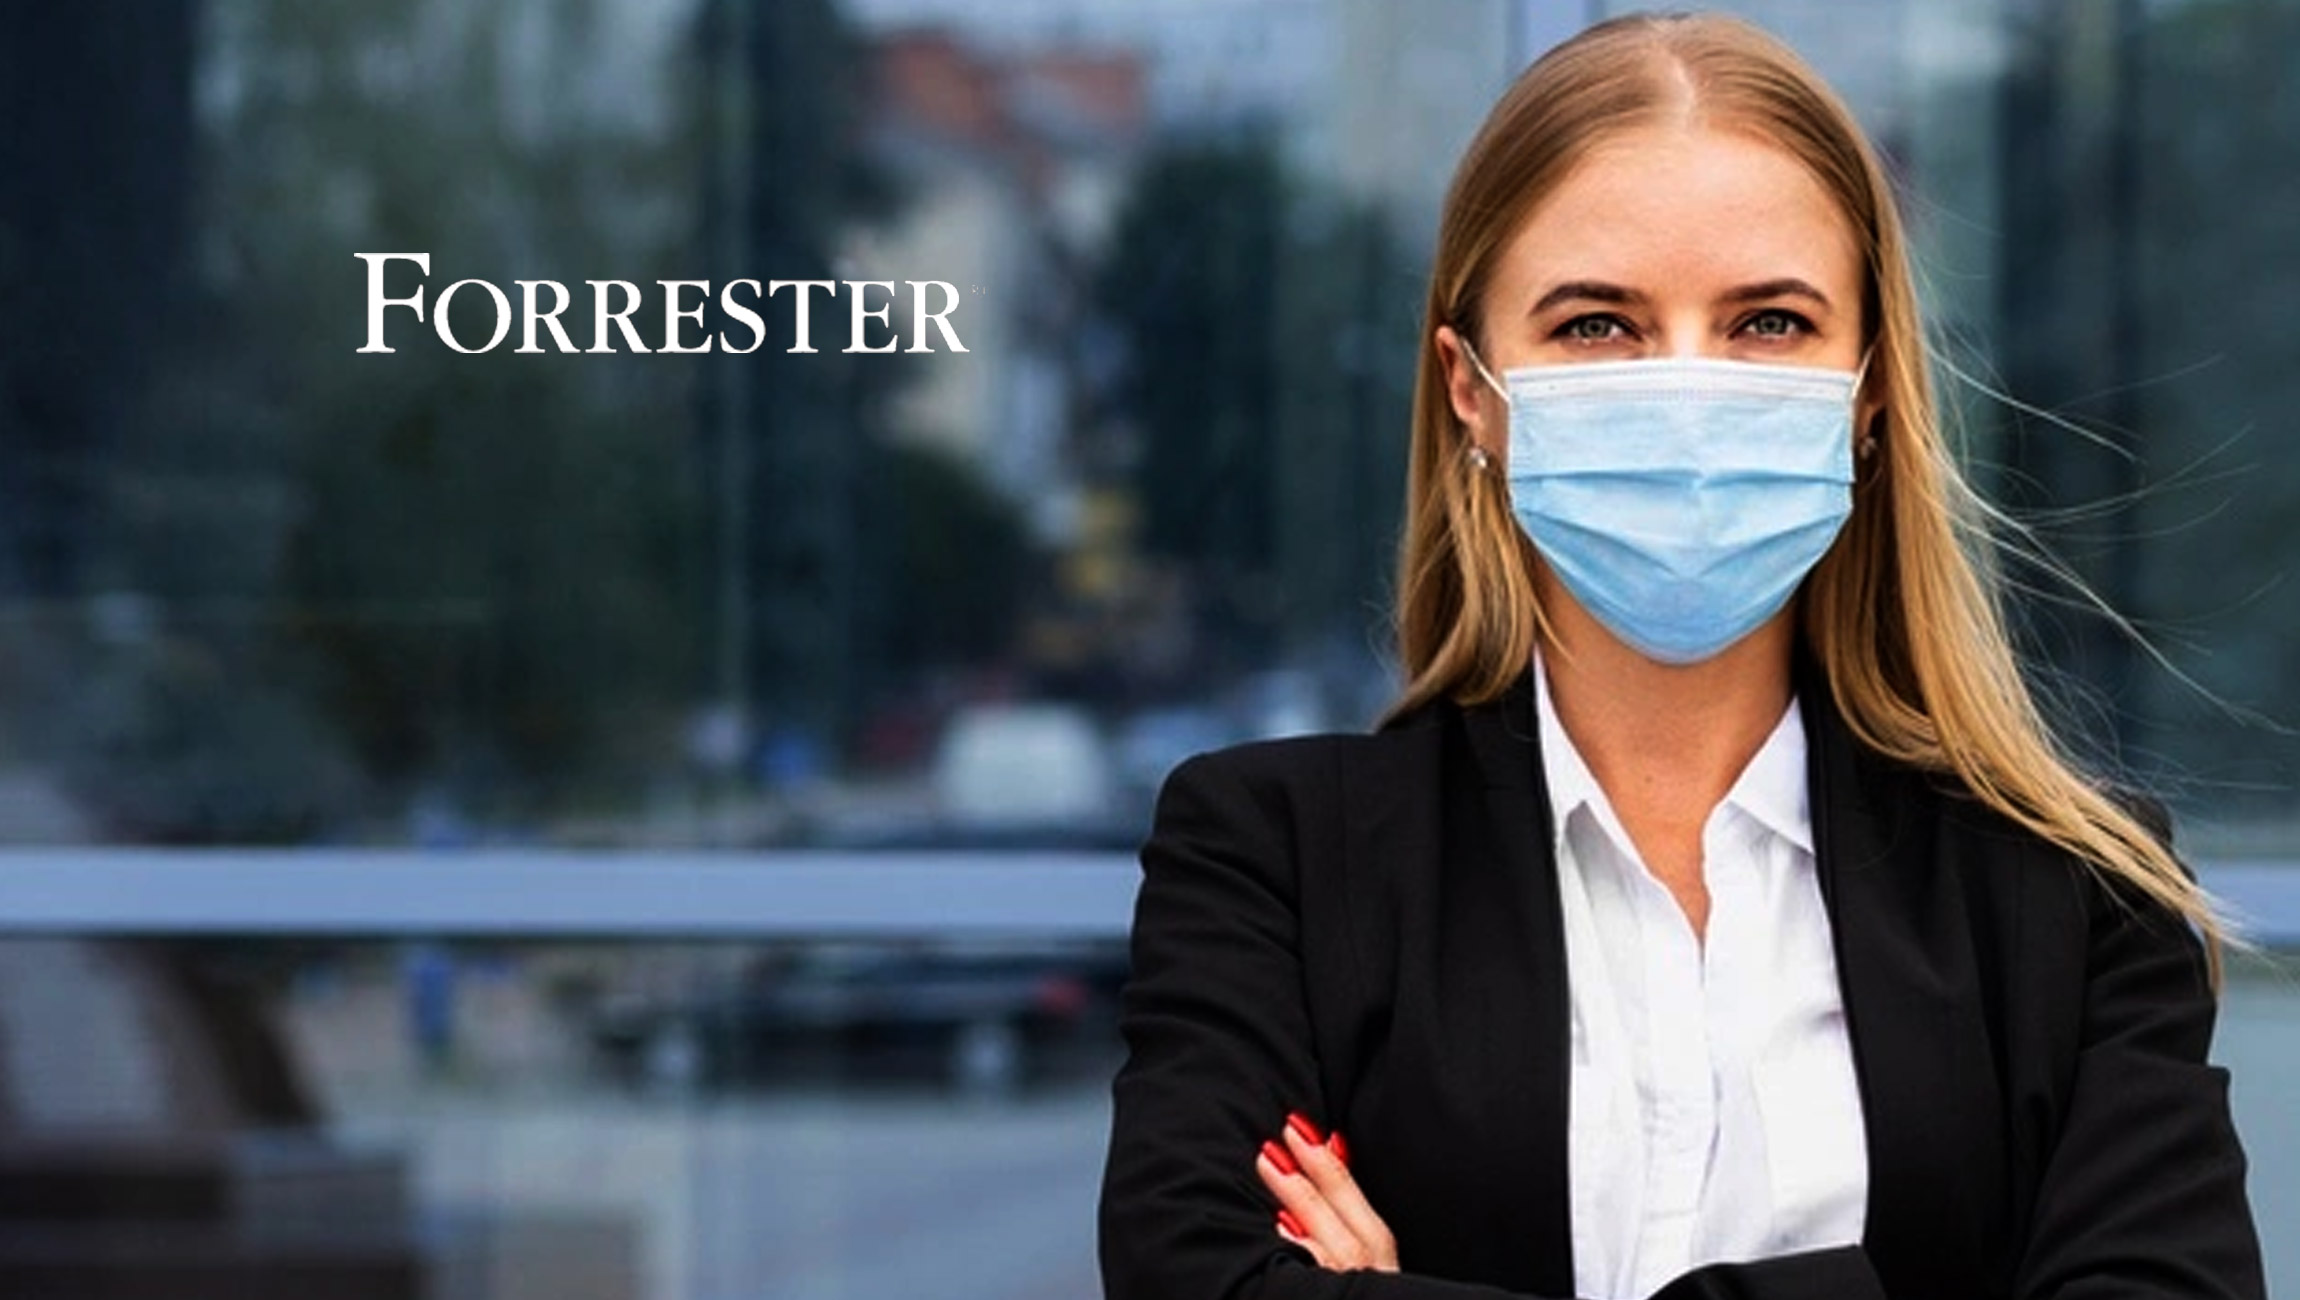 Forrester: Despite COVID-19 Vaccine Deployment Underway, Employers Must Exercise Caution As They Plan To Reopen Physical Offices